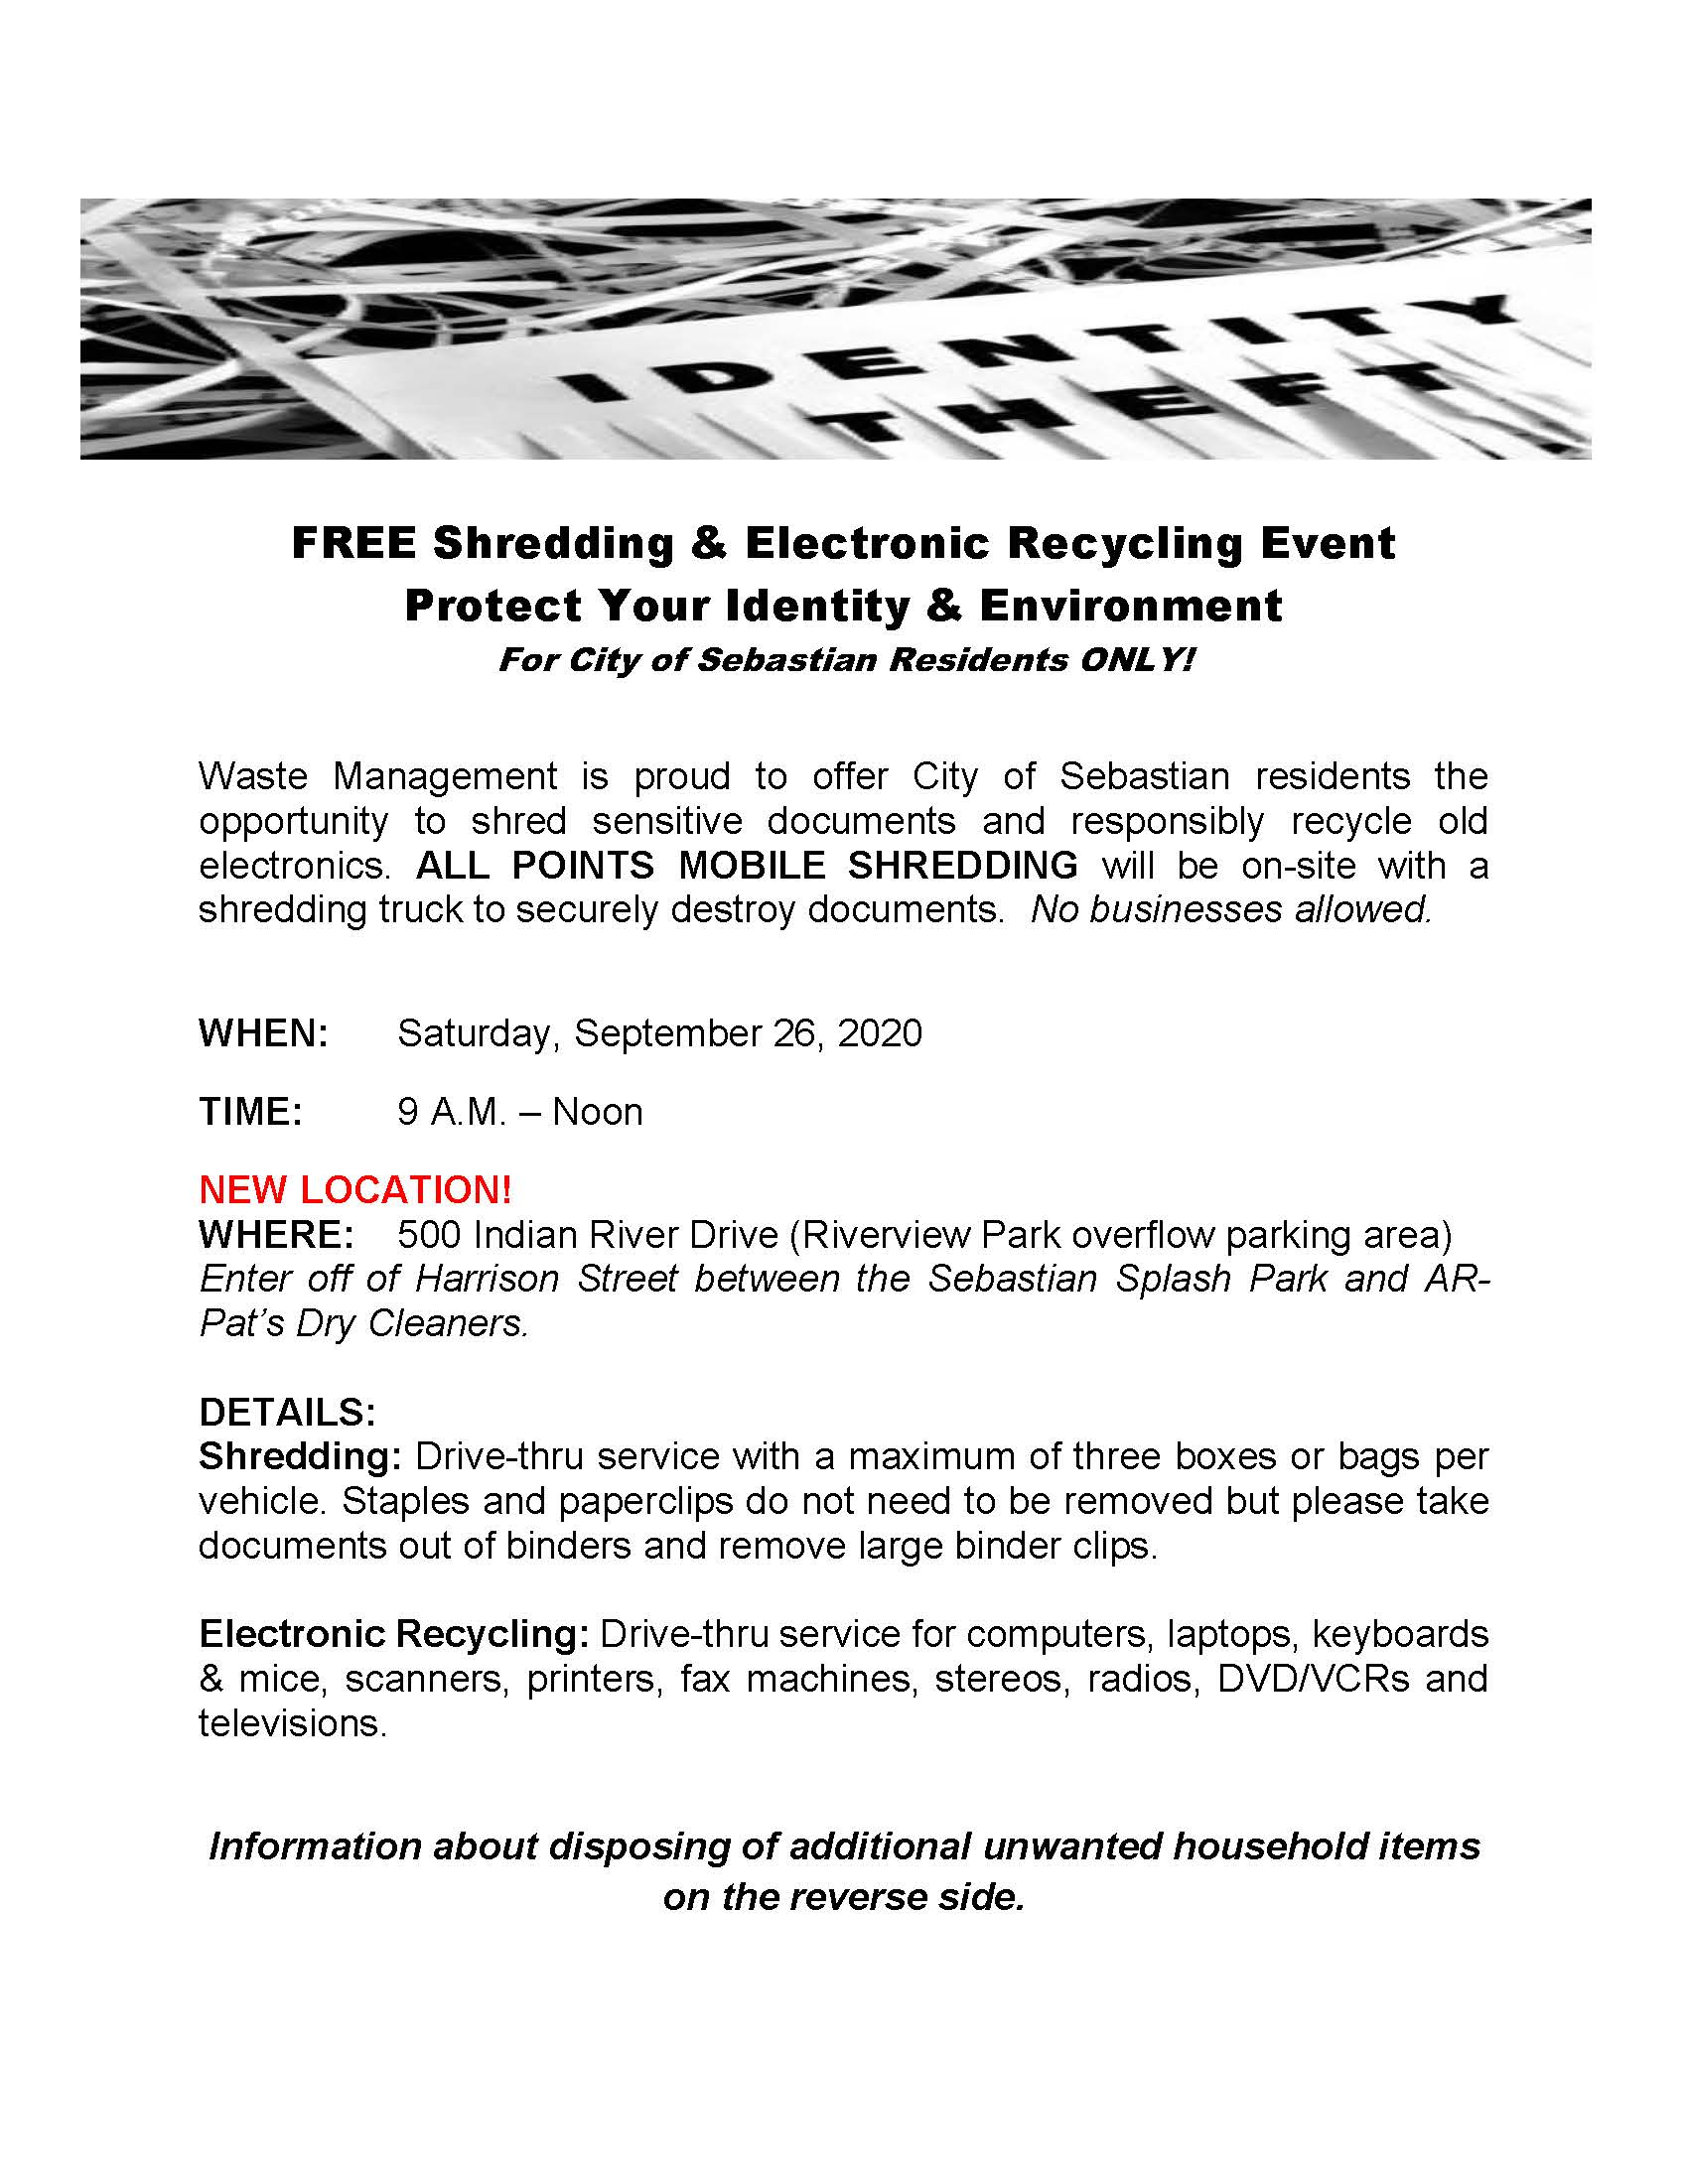 City of Sebastian Shredding event flyer.